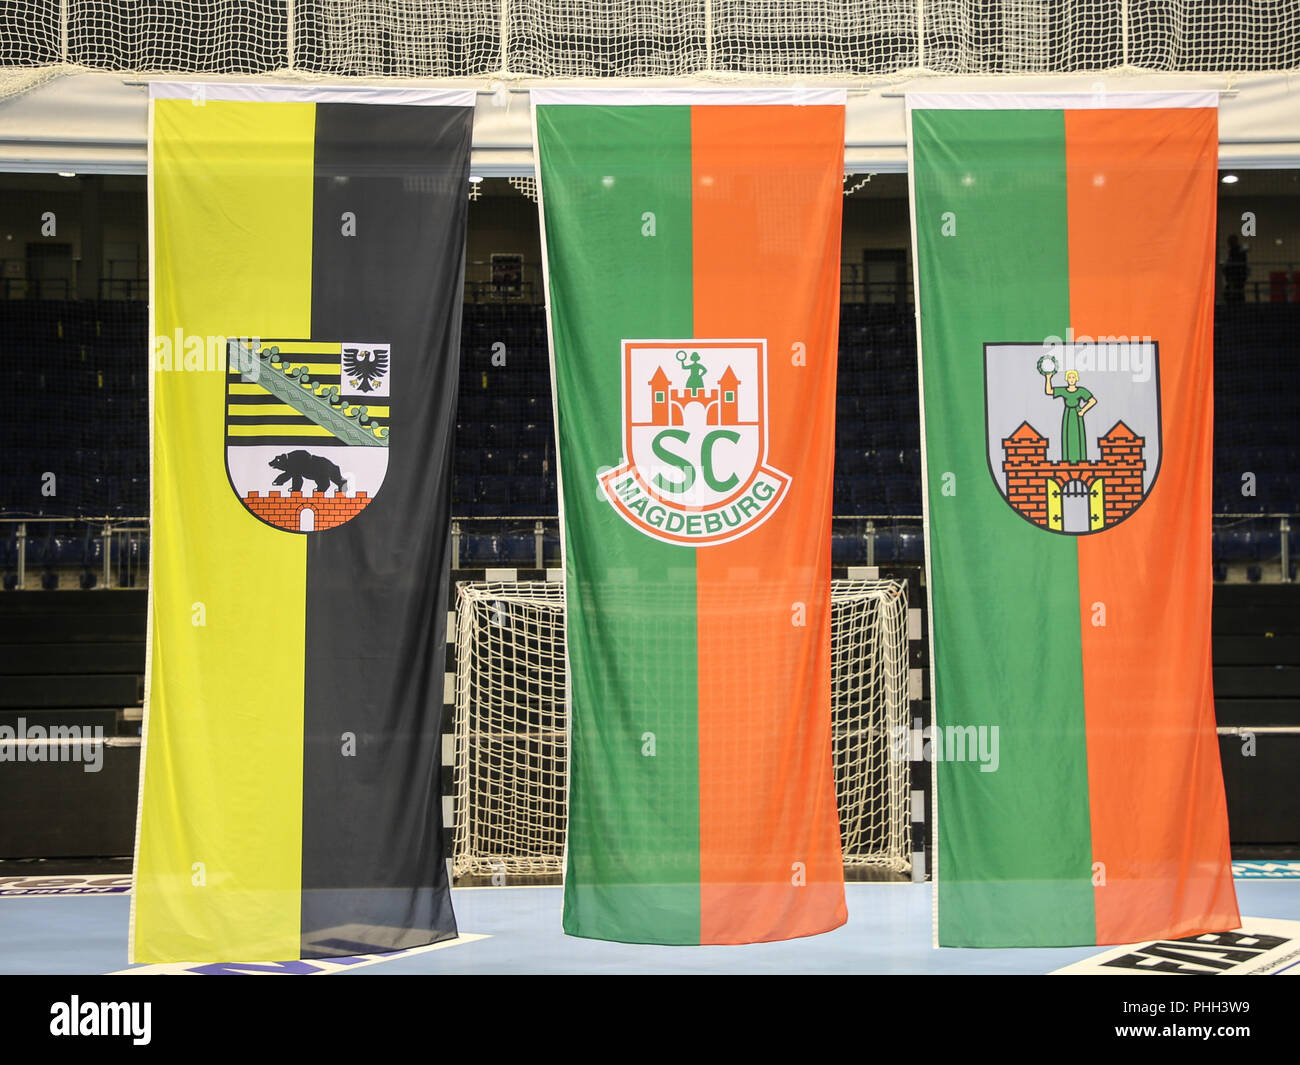 Flags in the GETEC ARENA Magdeburg Saxony-Anhalt - Stock Image